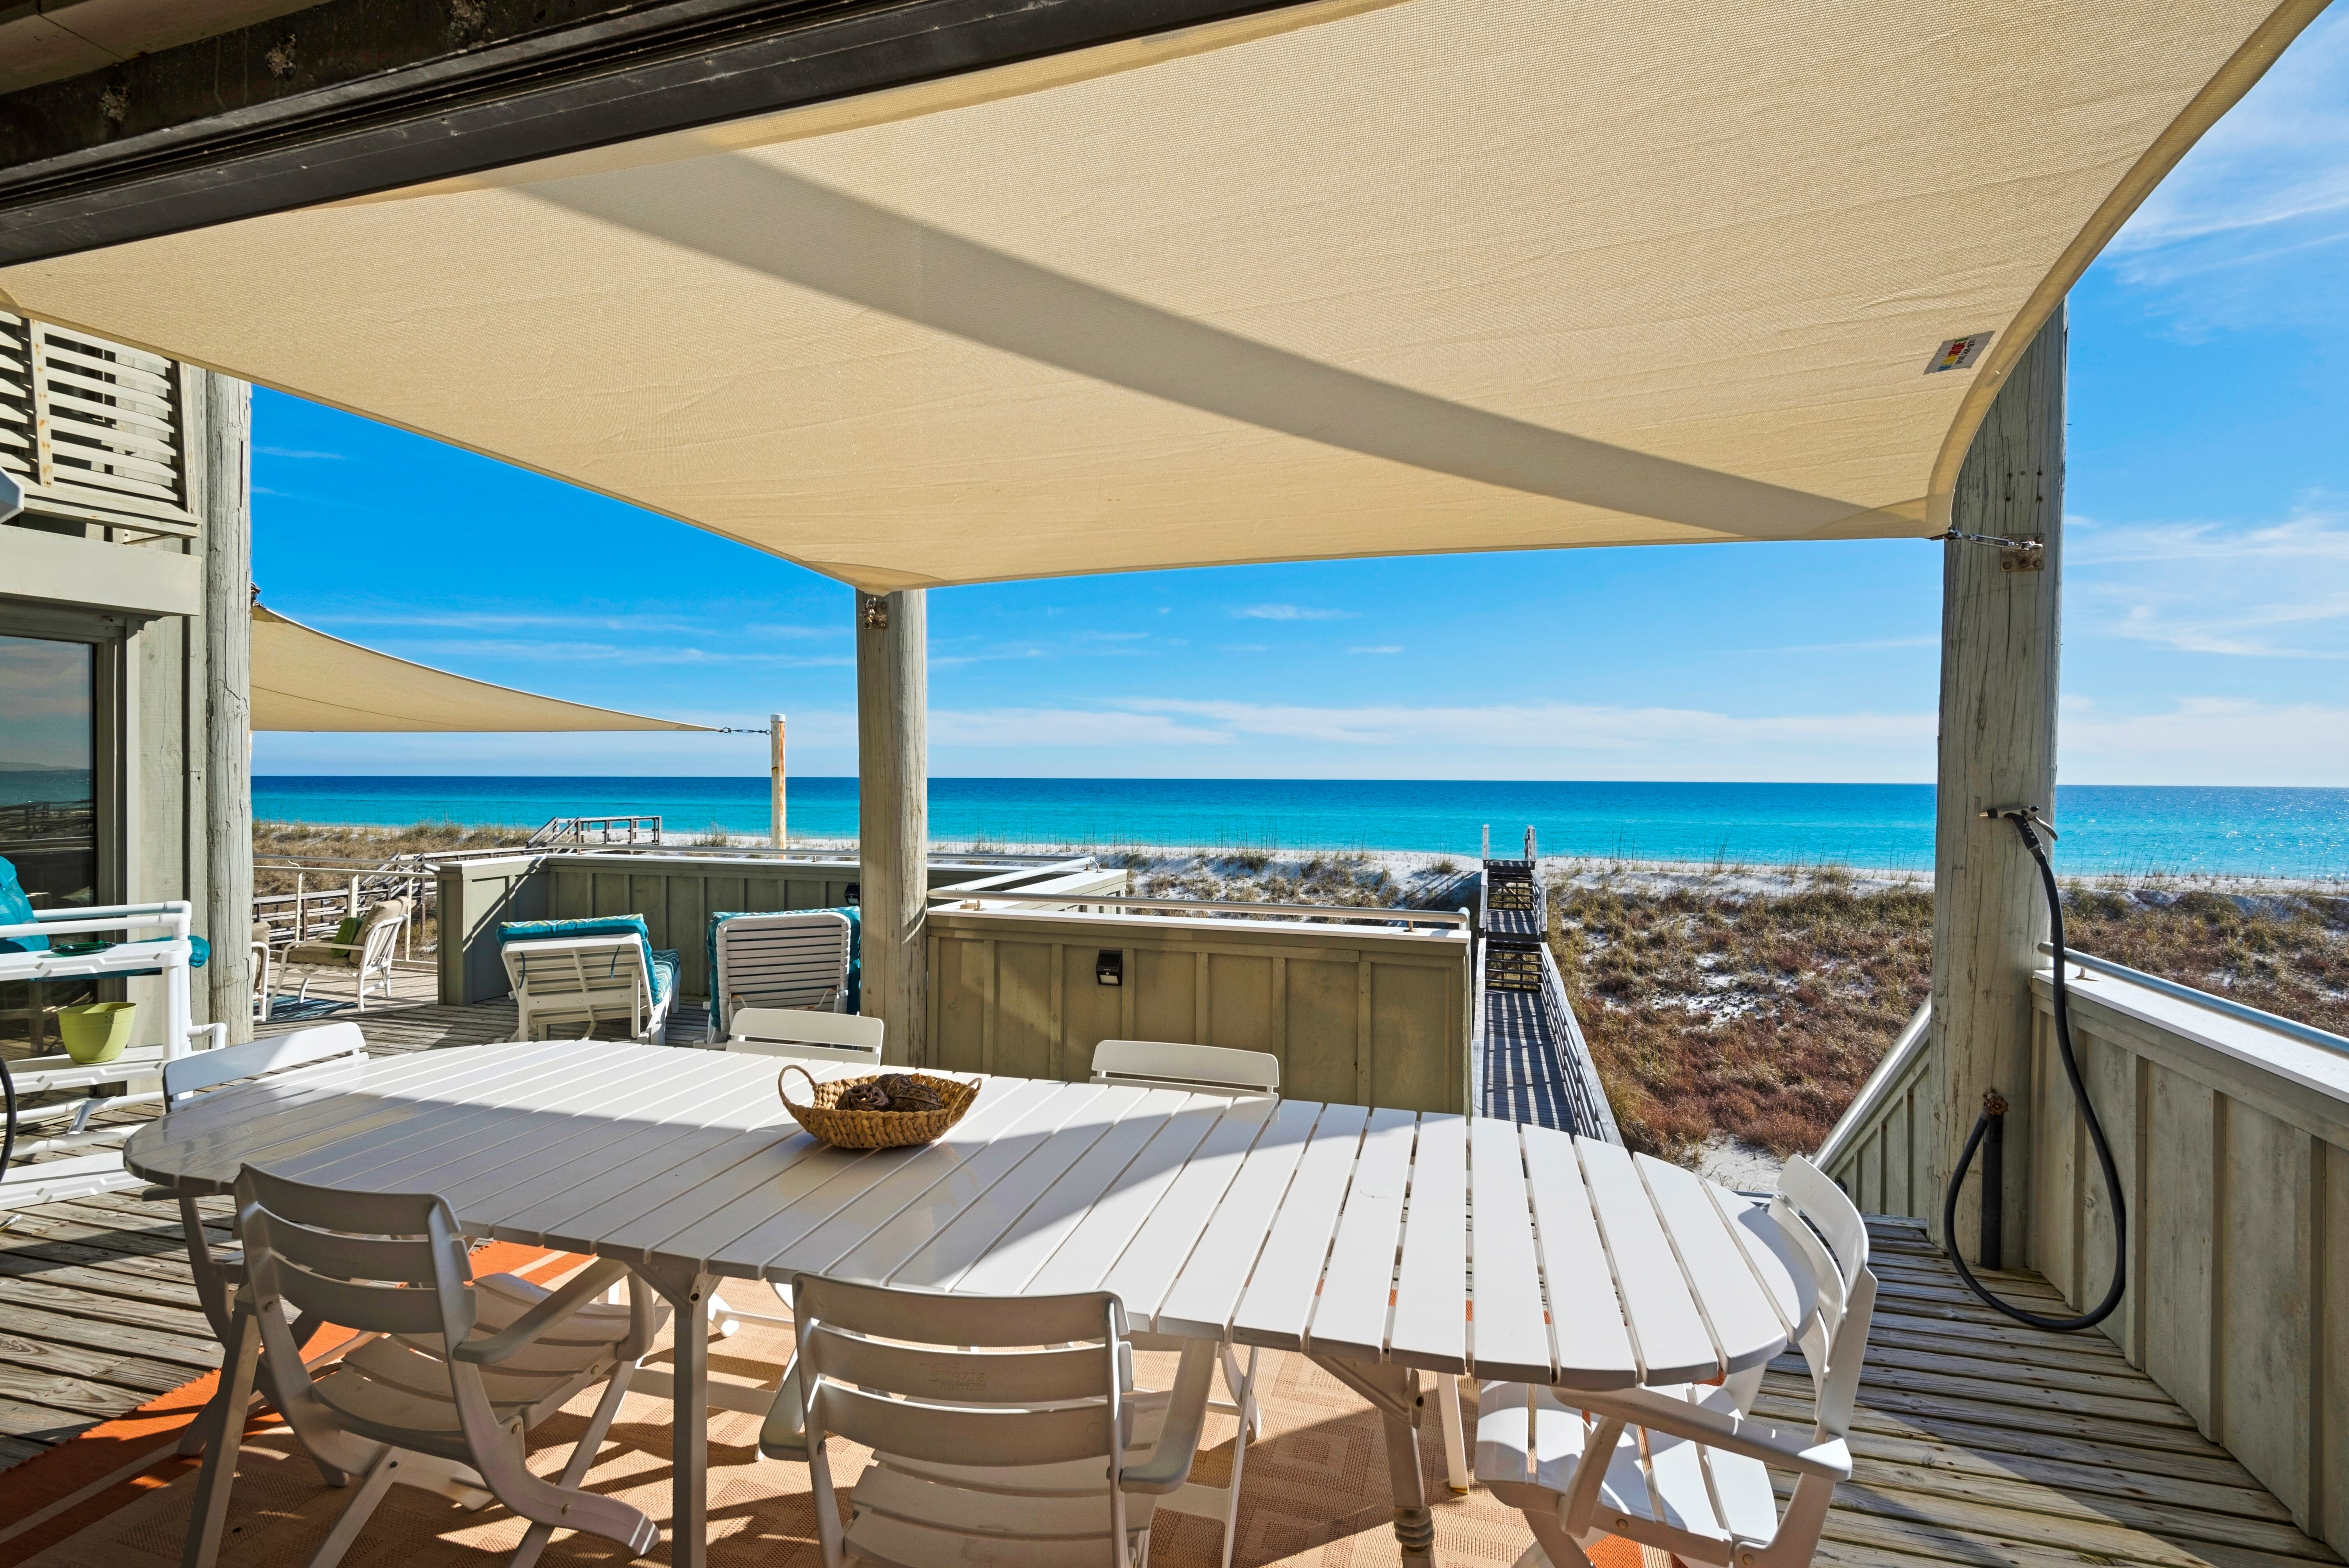 7527 Gulf Blvd - The Oyster House/Cottage rental in Navarre Beach House Rentals in Navarre Florida - #69